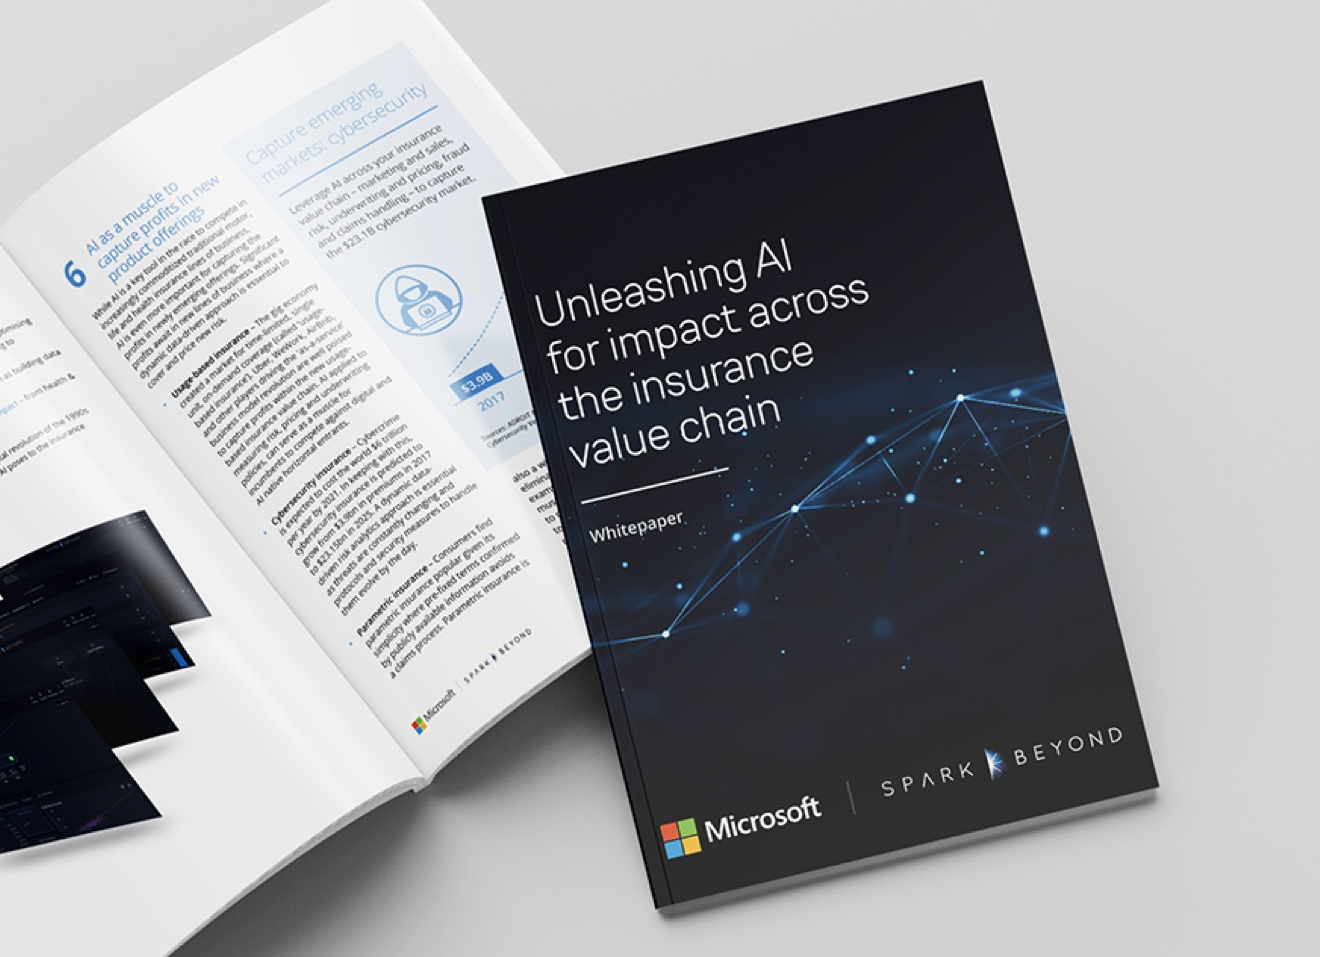 Unleashing AI for impact across the insurance value chain